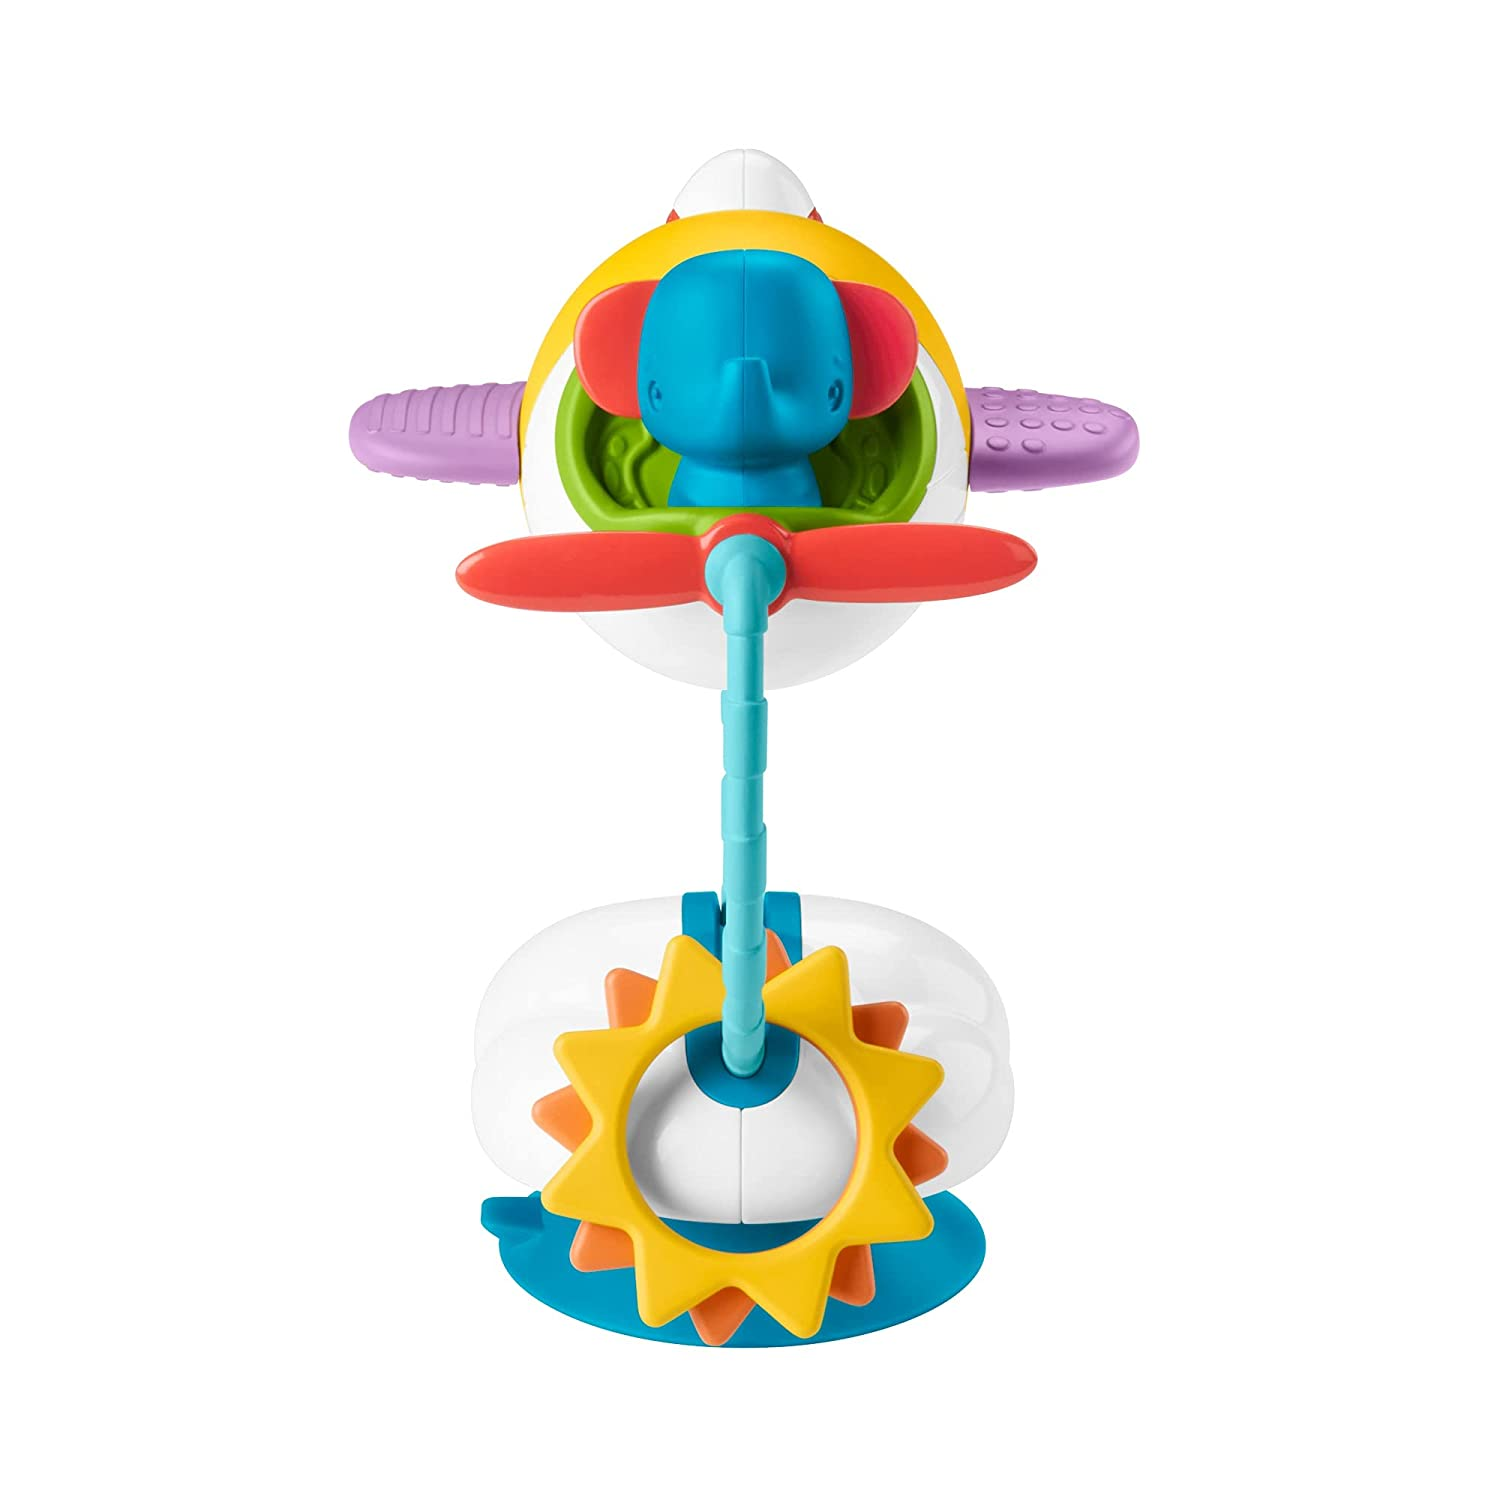 Fisher-Price Total Clean Activity Plane, Dishwasher-Safe High Chair Suction Cup Baby Toy